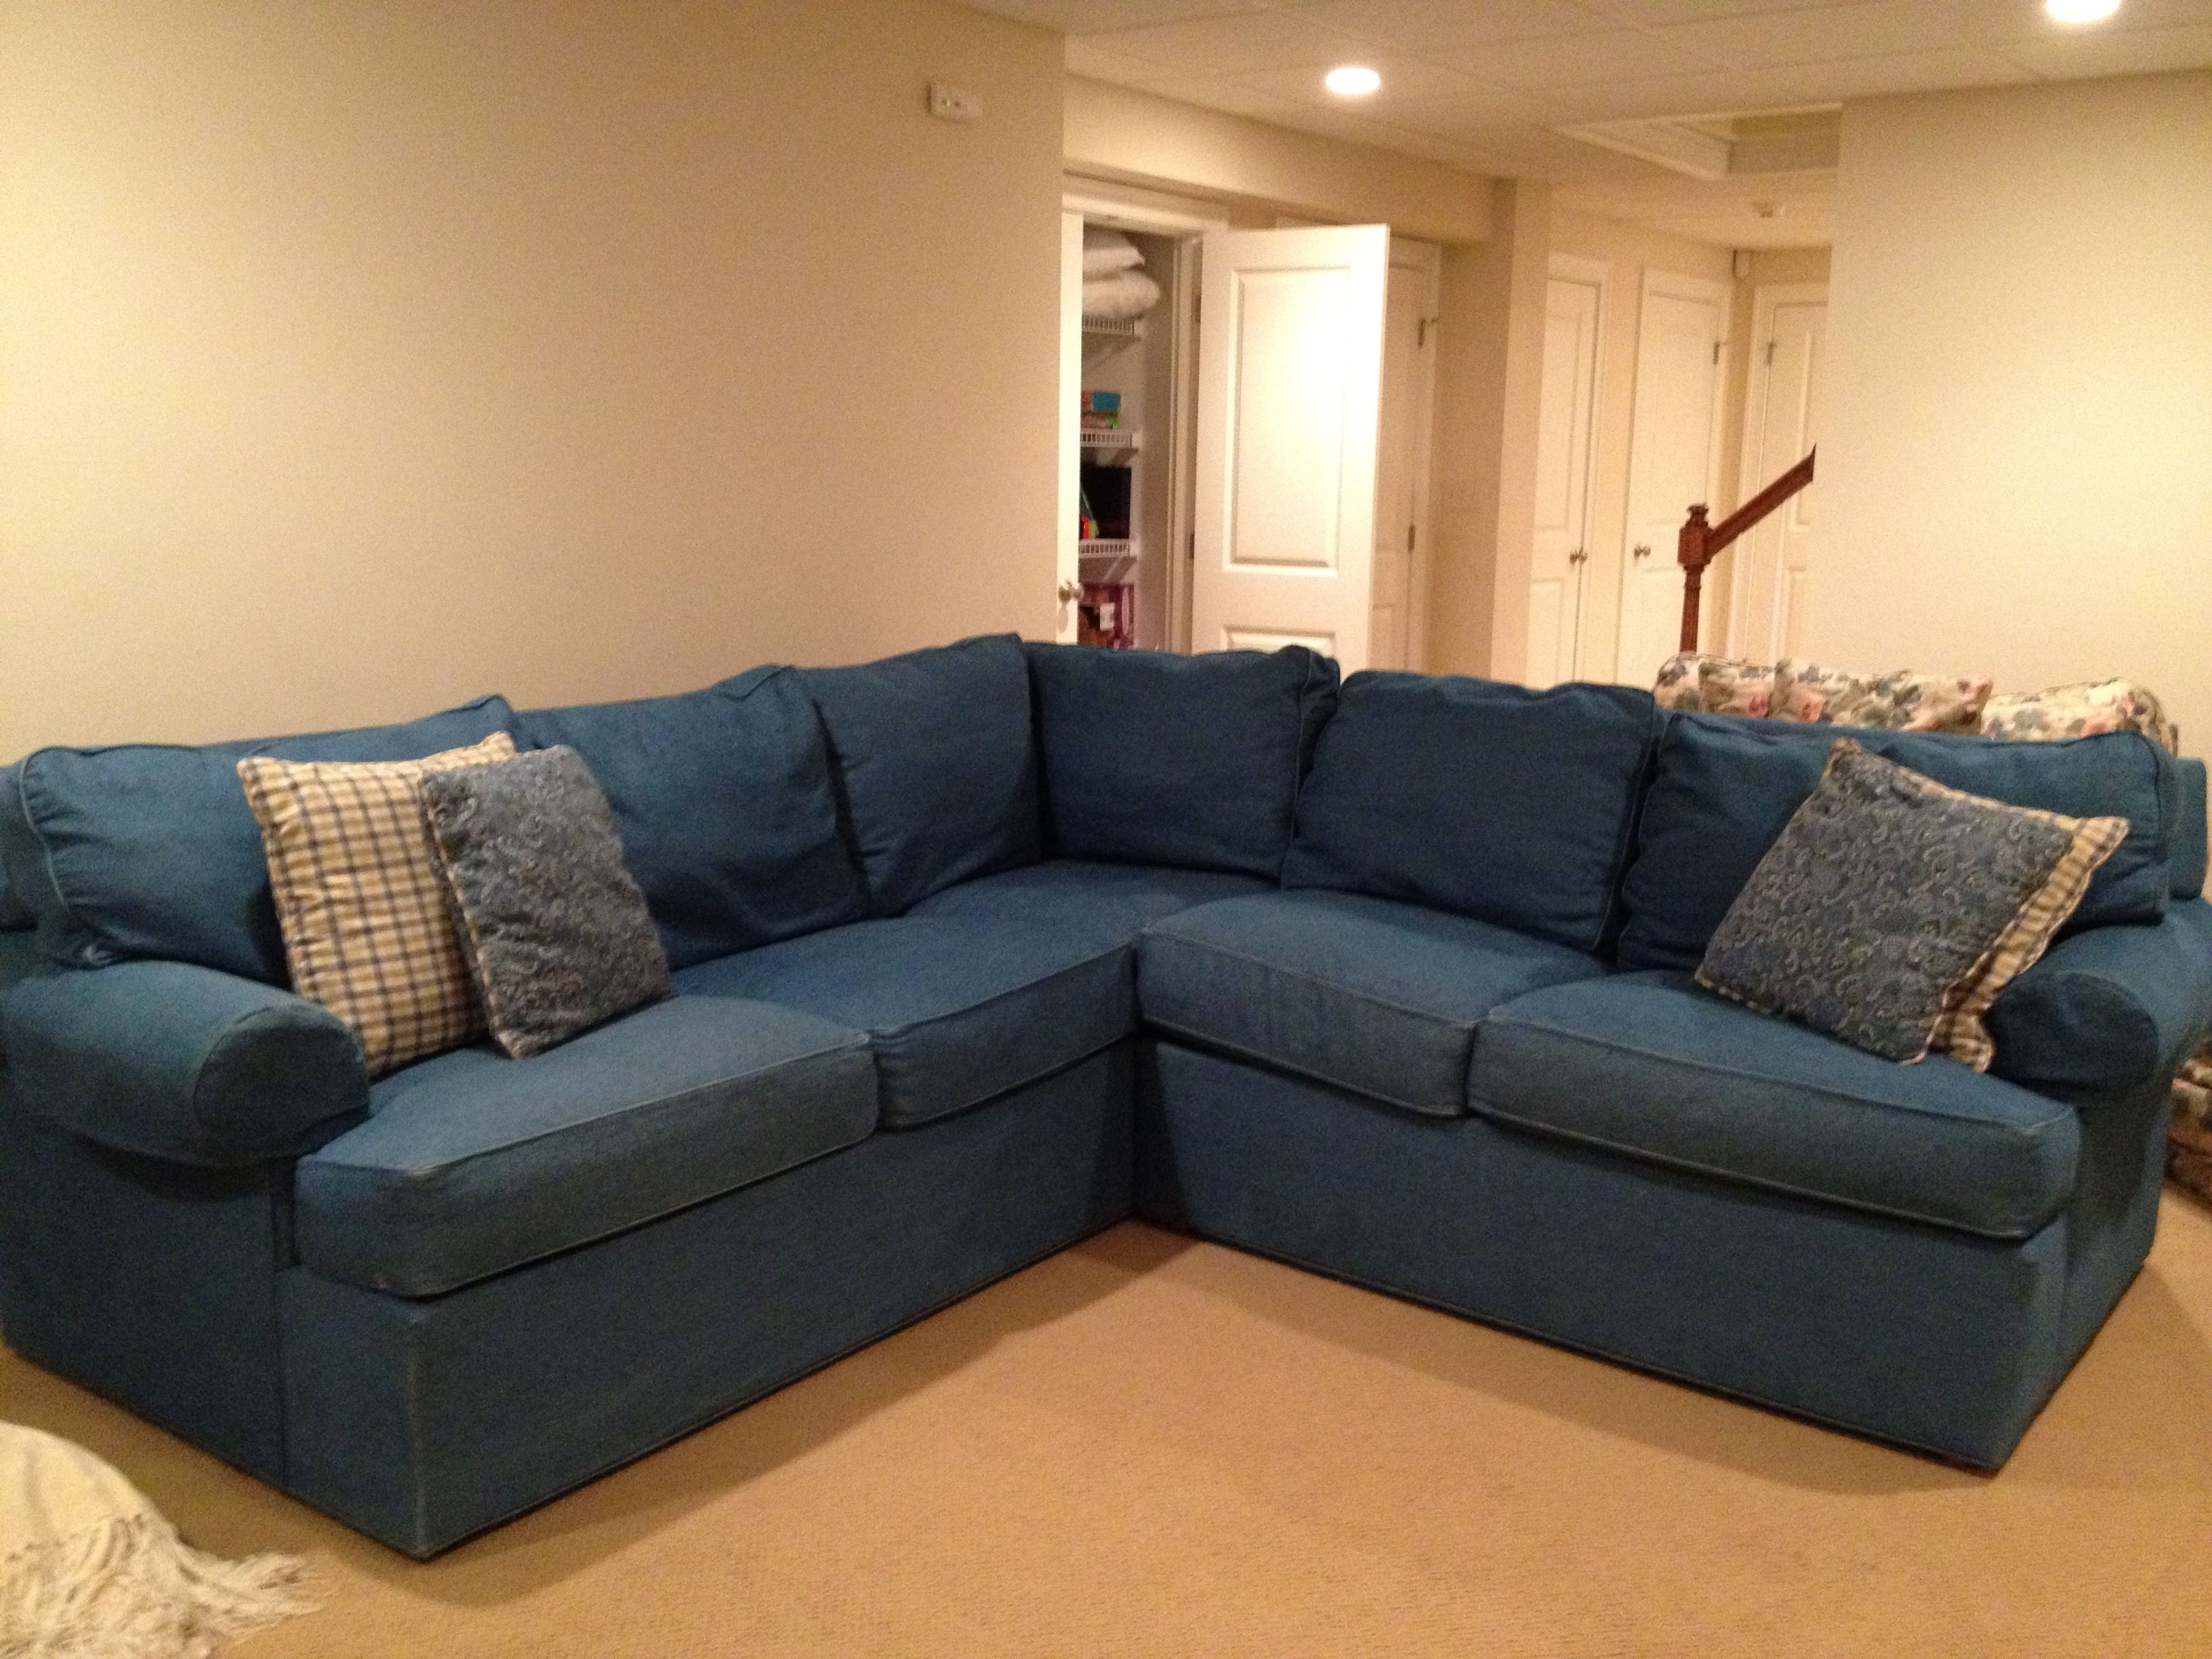 denim sectional sofas | Denim Sectional Sofa Left Right Arm ...